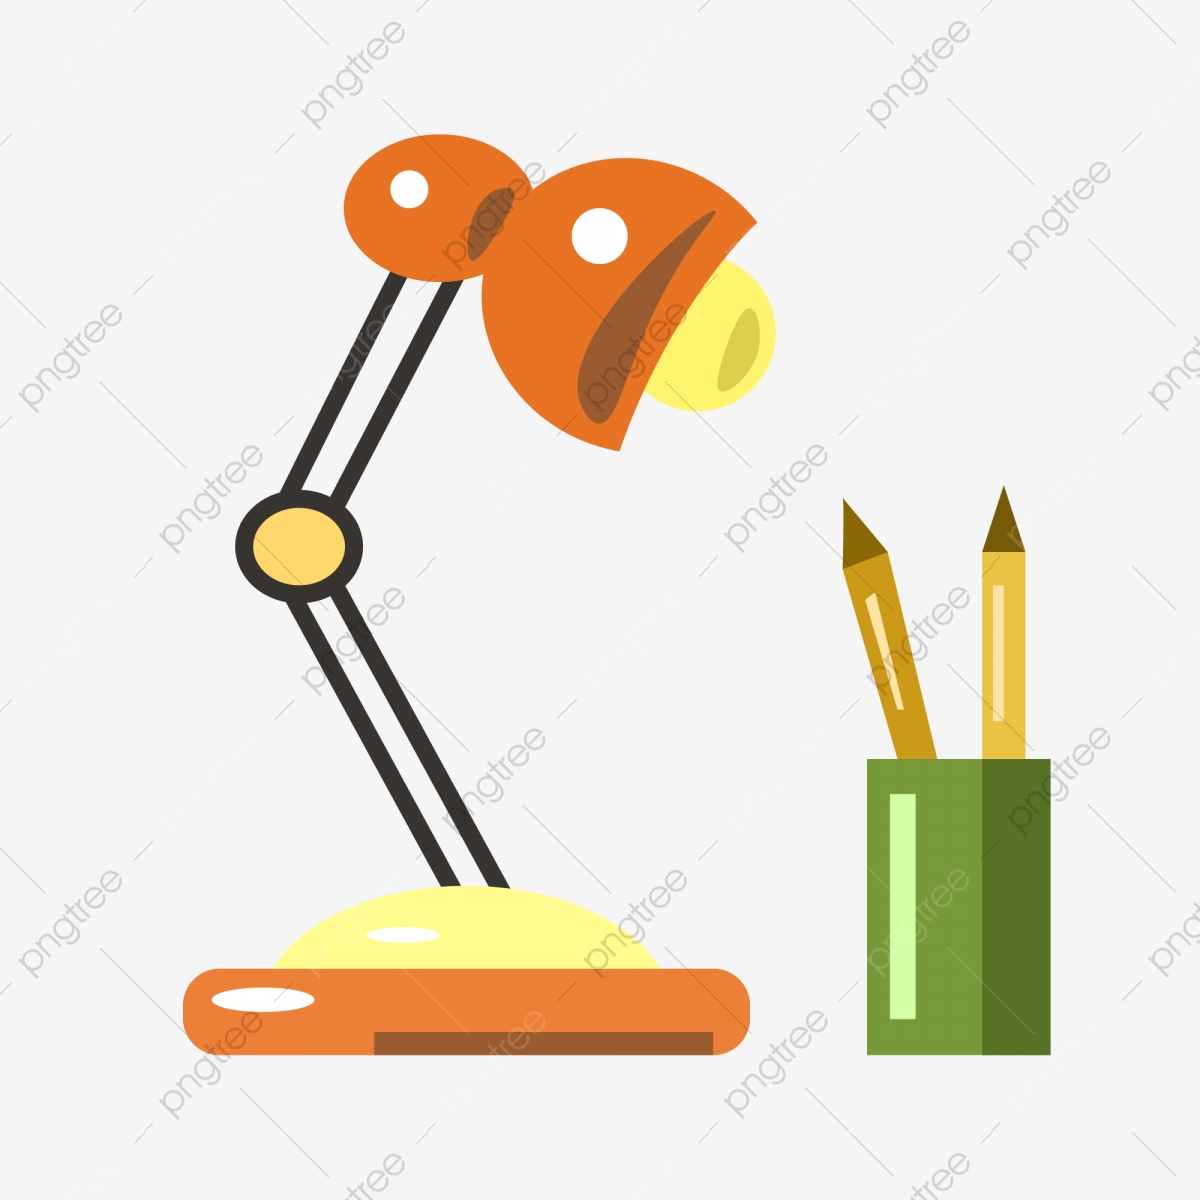 Red Desk Lamp Table Lamp Red Pen Holder Png And Vector With Transparent Background For Free Download